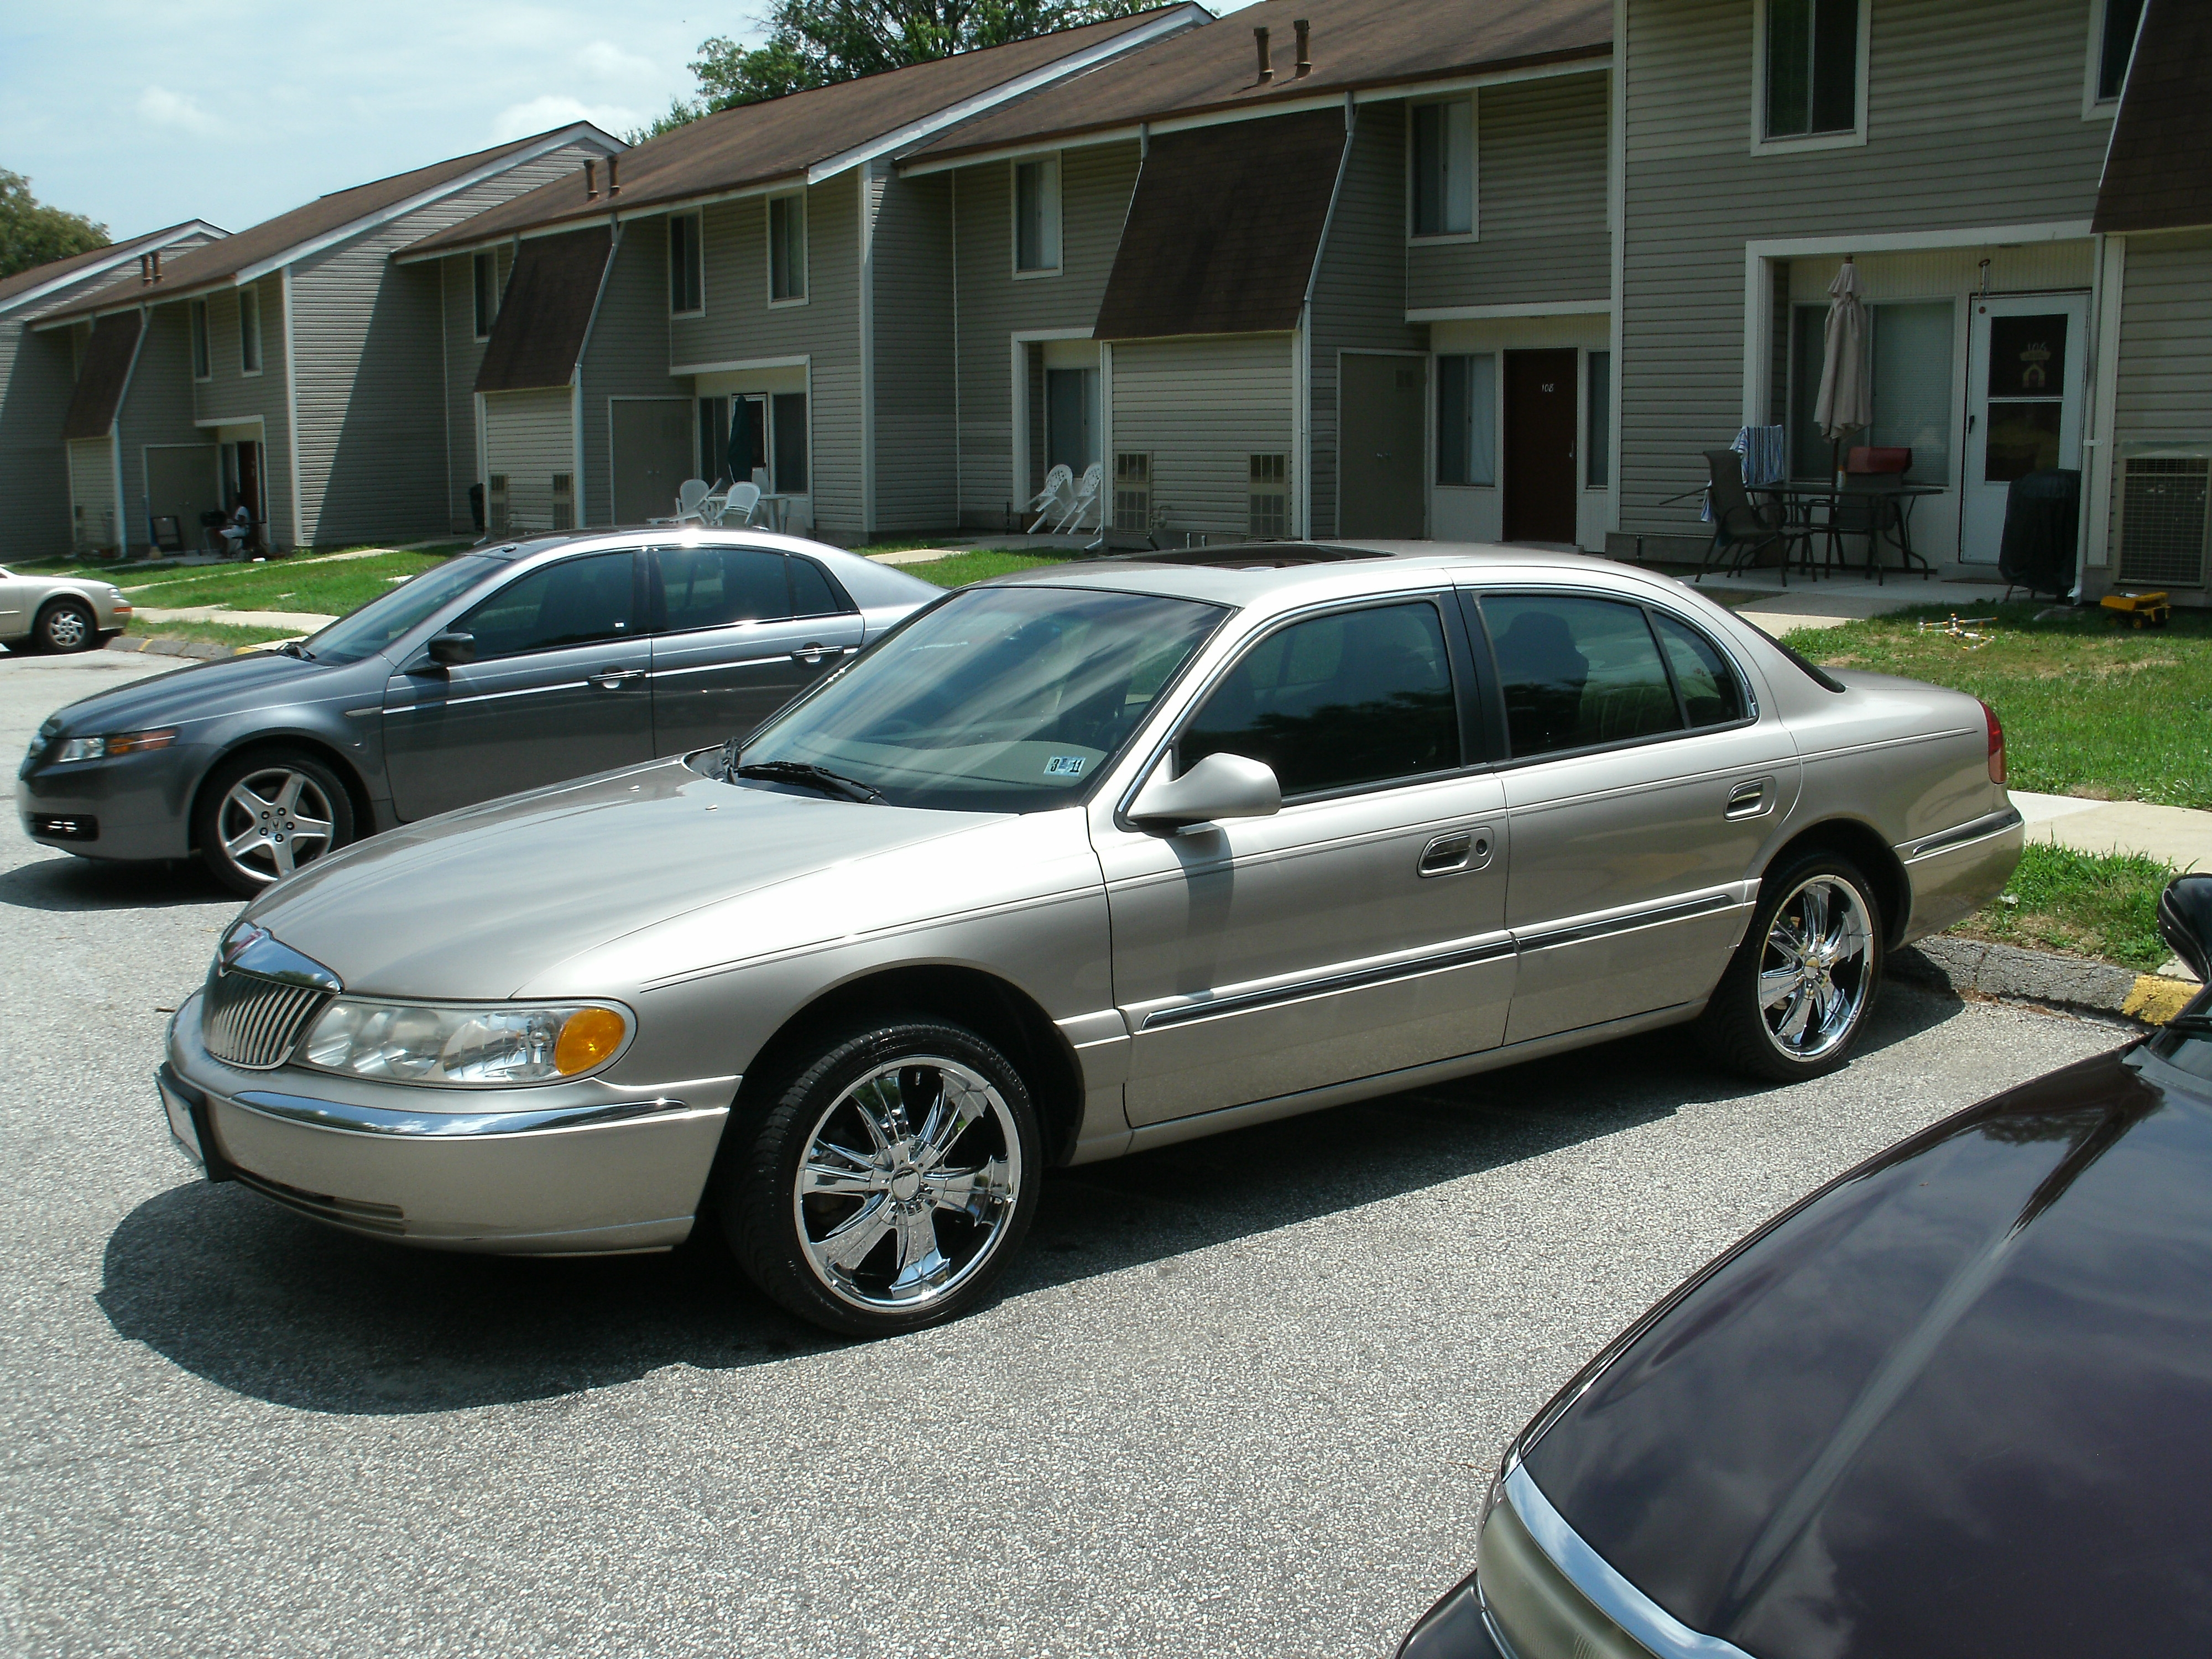 motorkingz1 1999 Lincoln Continental Specs, Photos ...